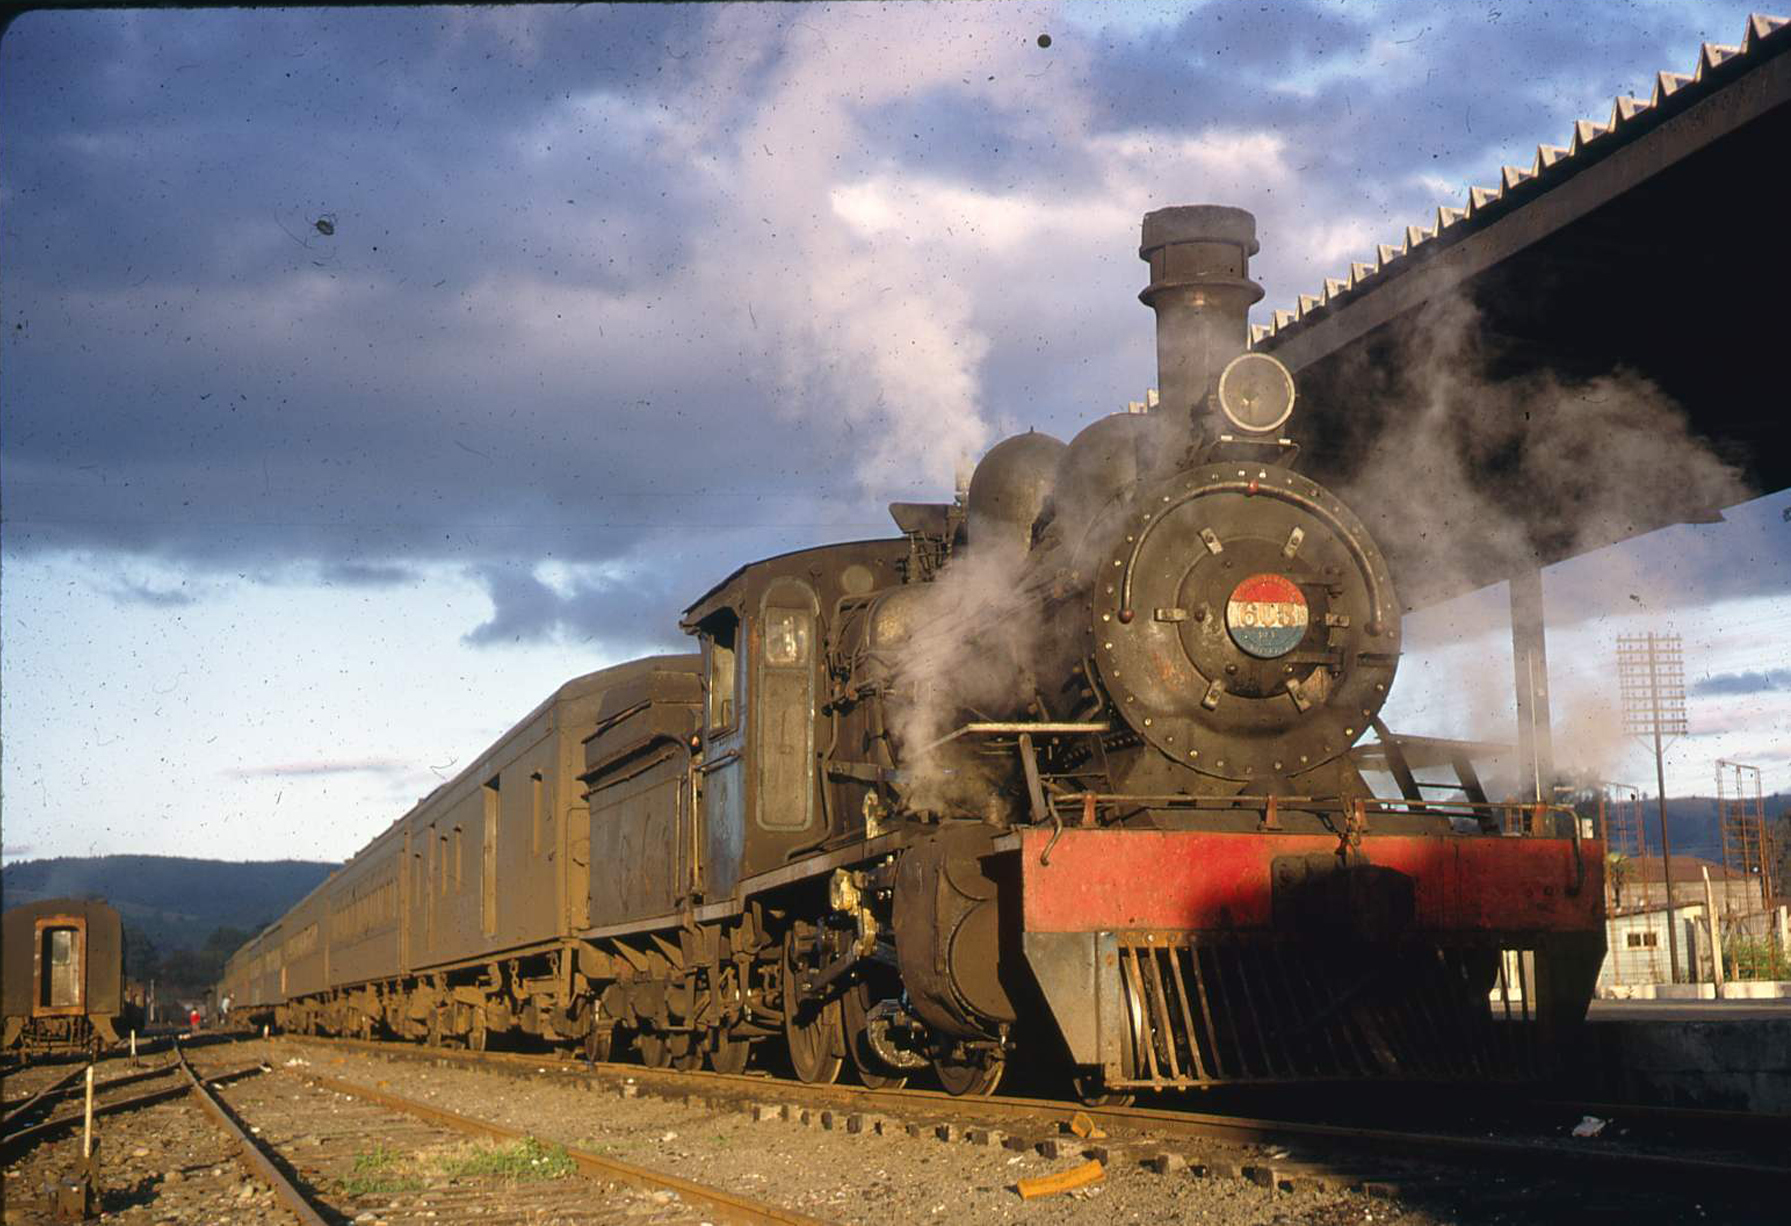 Enterreno - Fotos históricas de chile - fotos antiguas de Chile - Estación de Valdivia en 1970